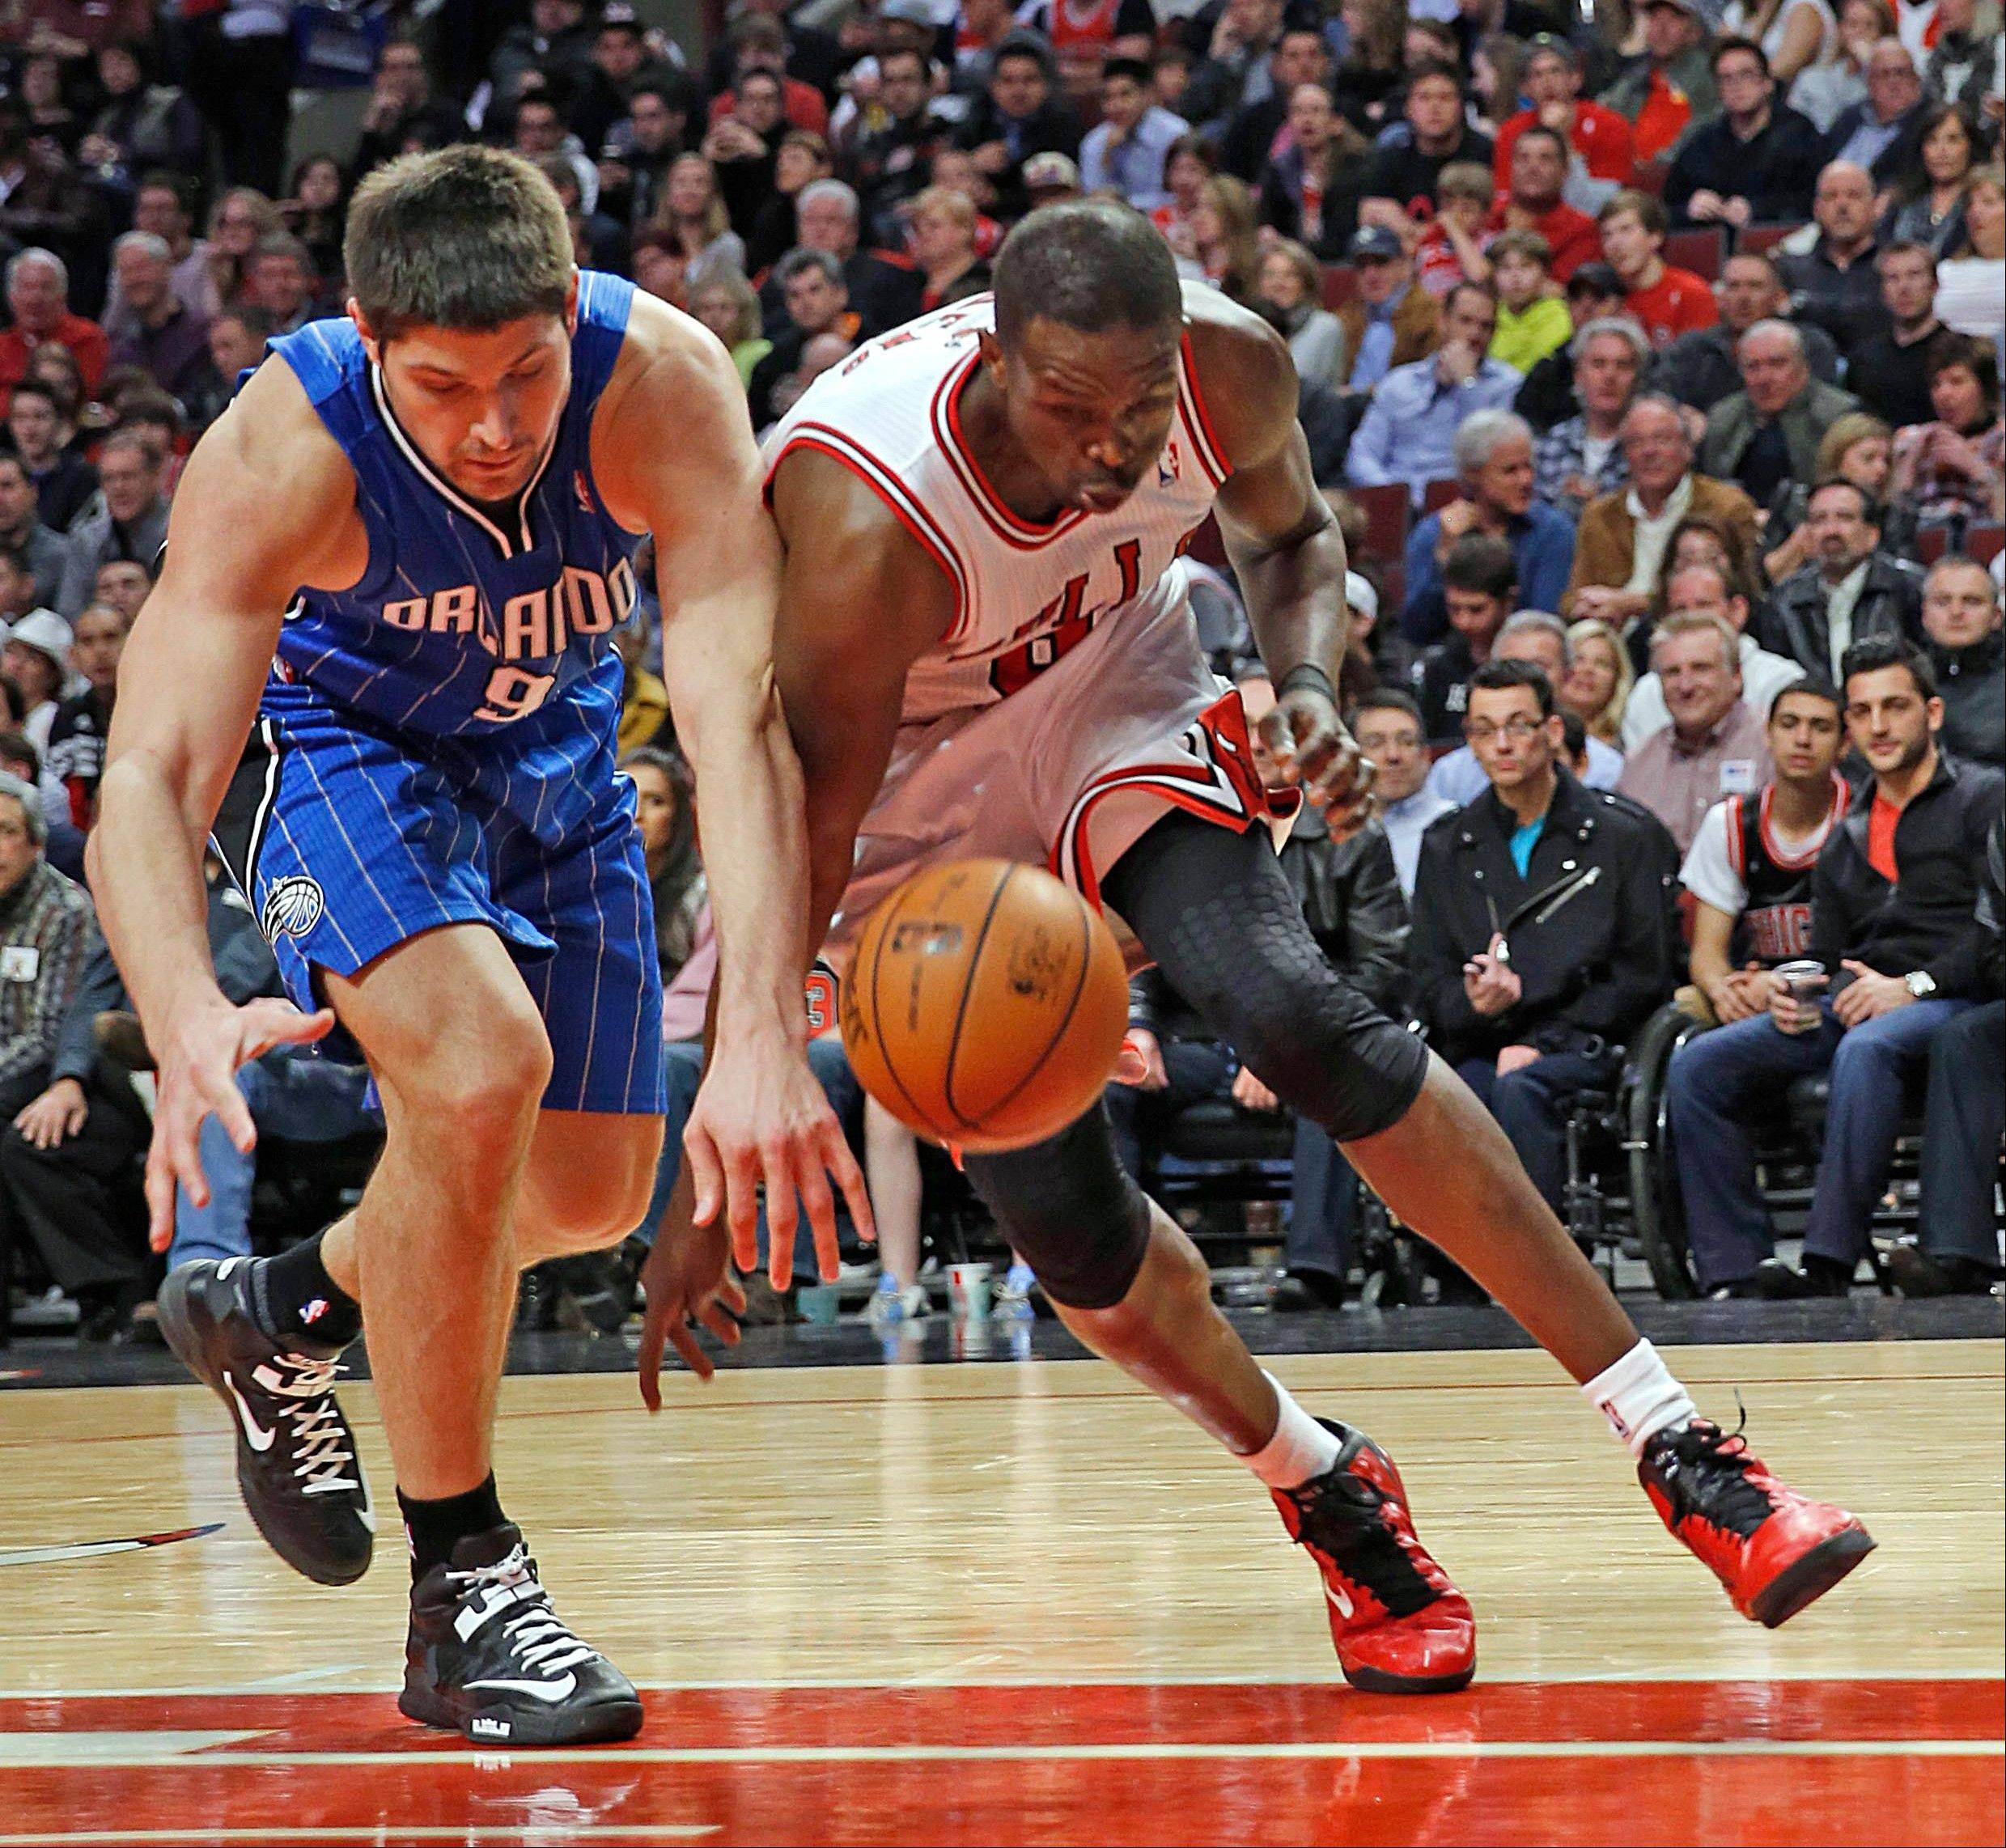 Luol Deng and Orlando Magic's Nikola Vucevic vie for a loose ball during the fourth quarter as the Bulls beat the Magic 87-86 in an NBA basketball game on Friday, April 5, 2013 in Chicago.